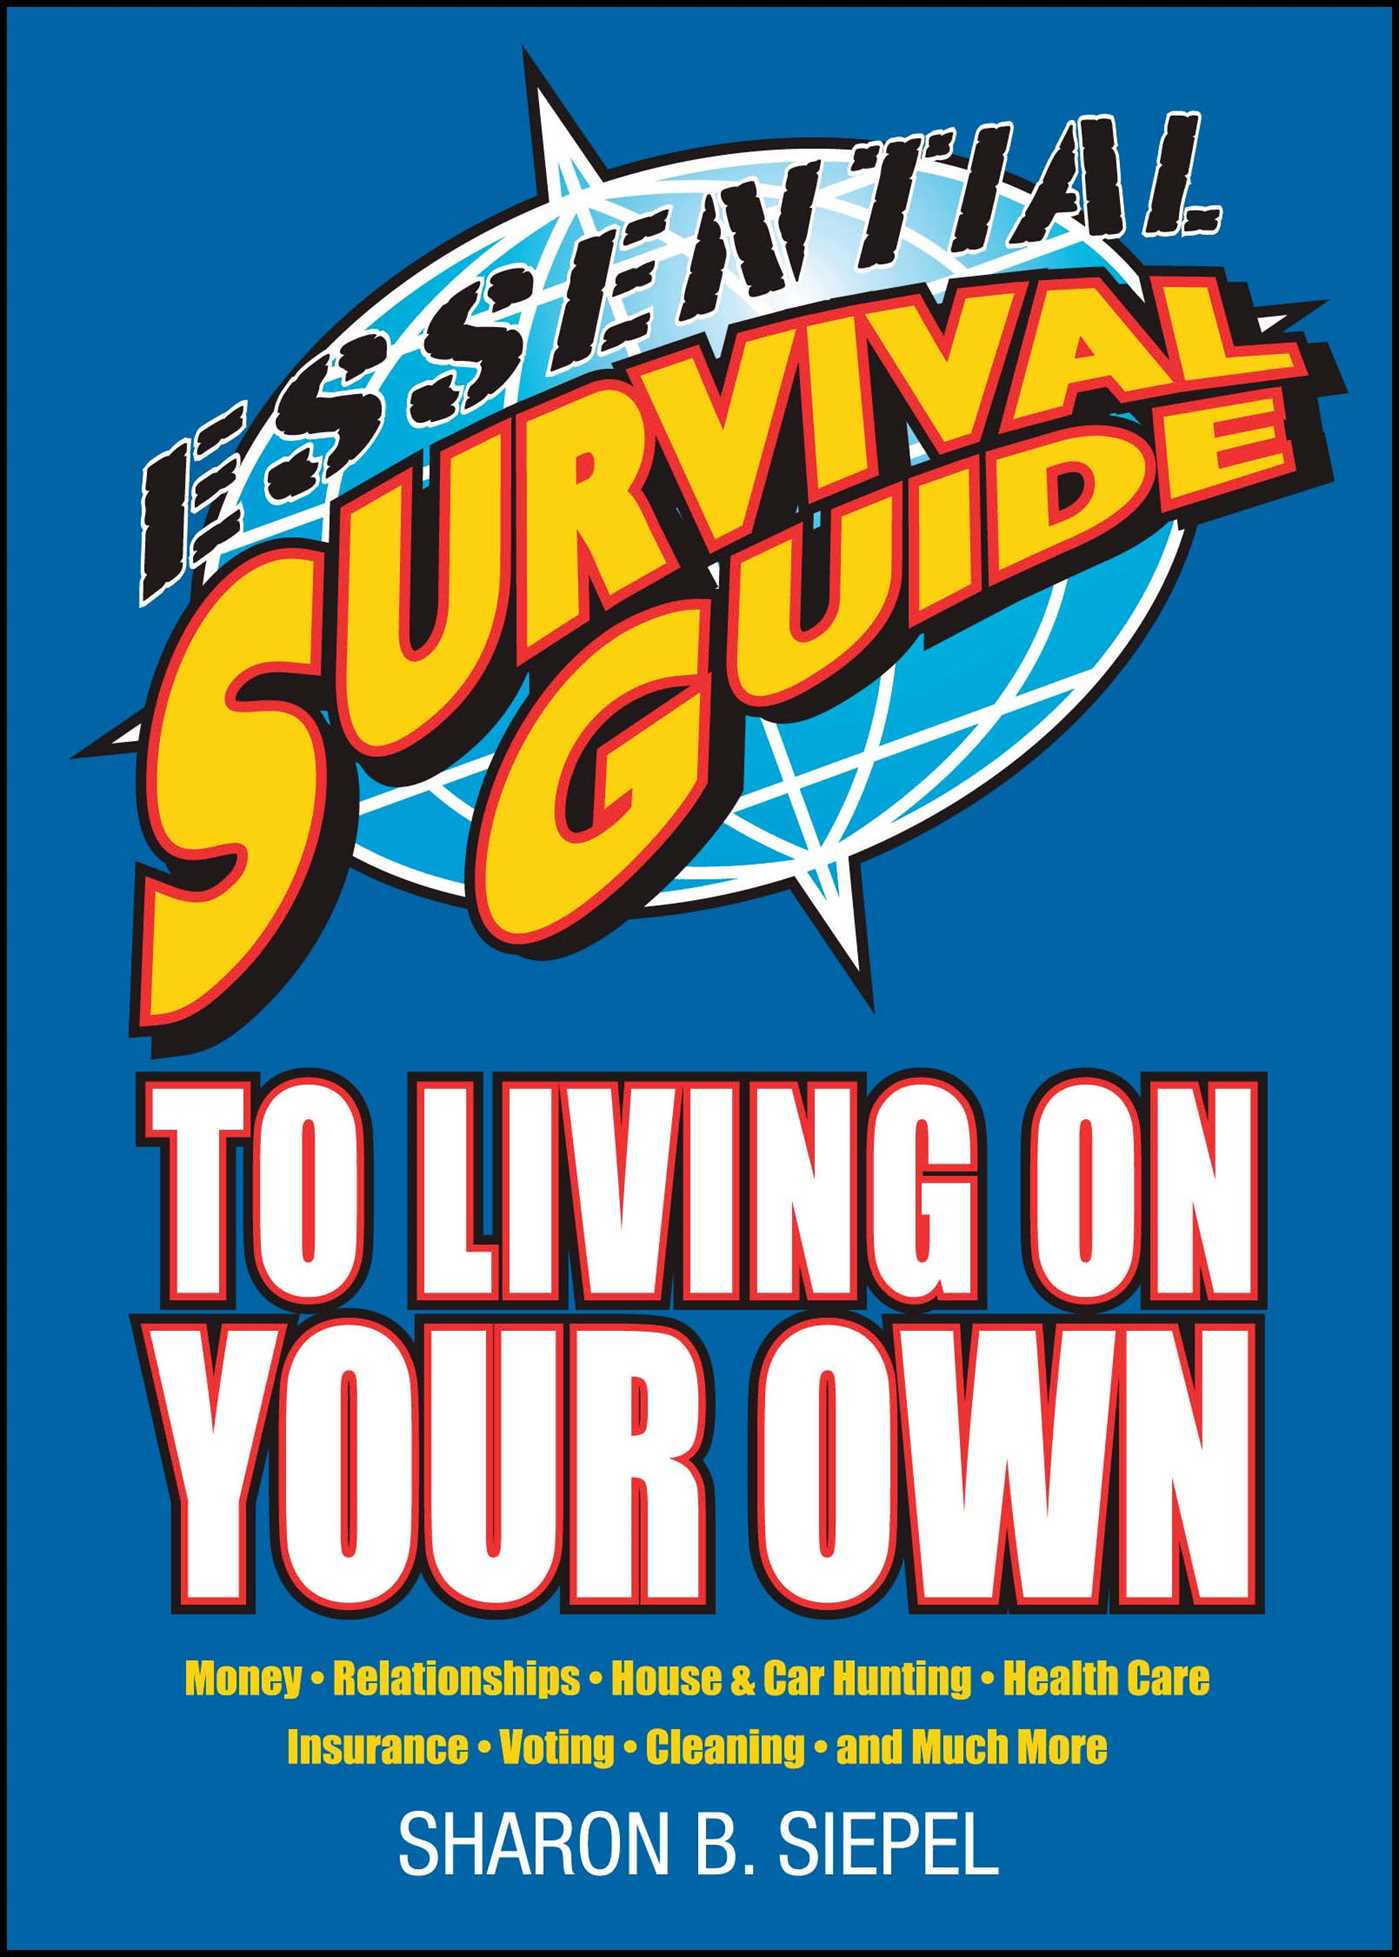 Essential survival guide to living on your own 9781416549697 hr